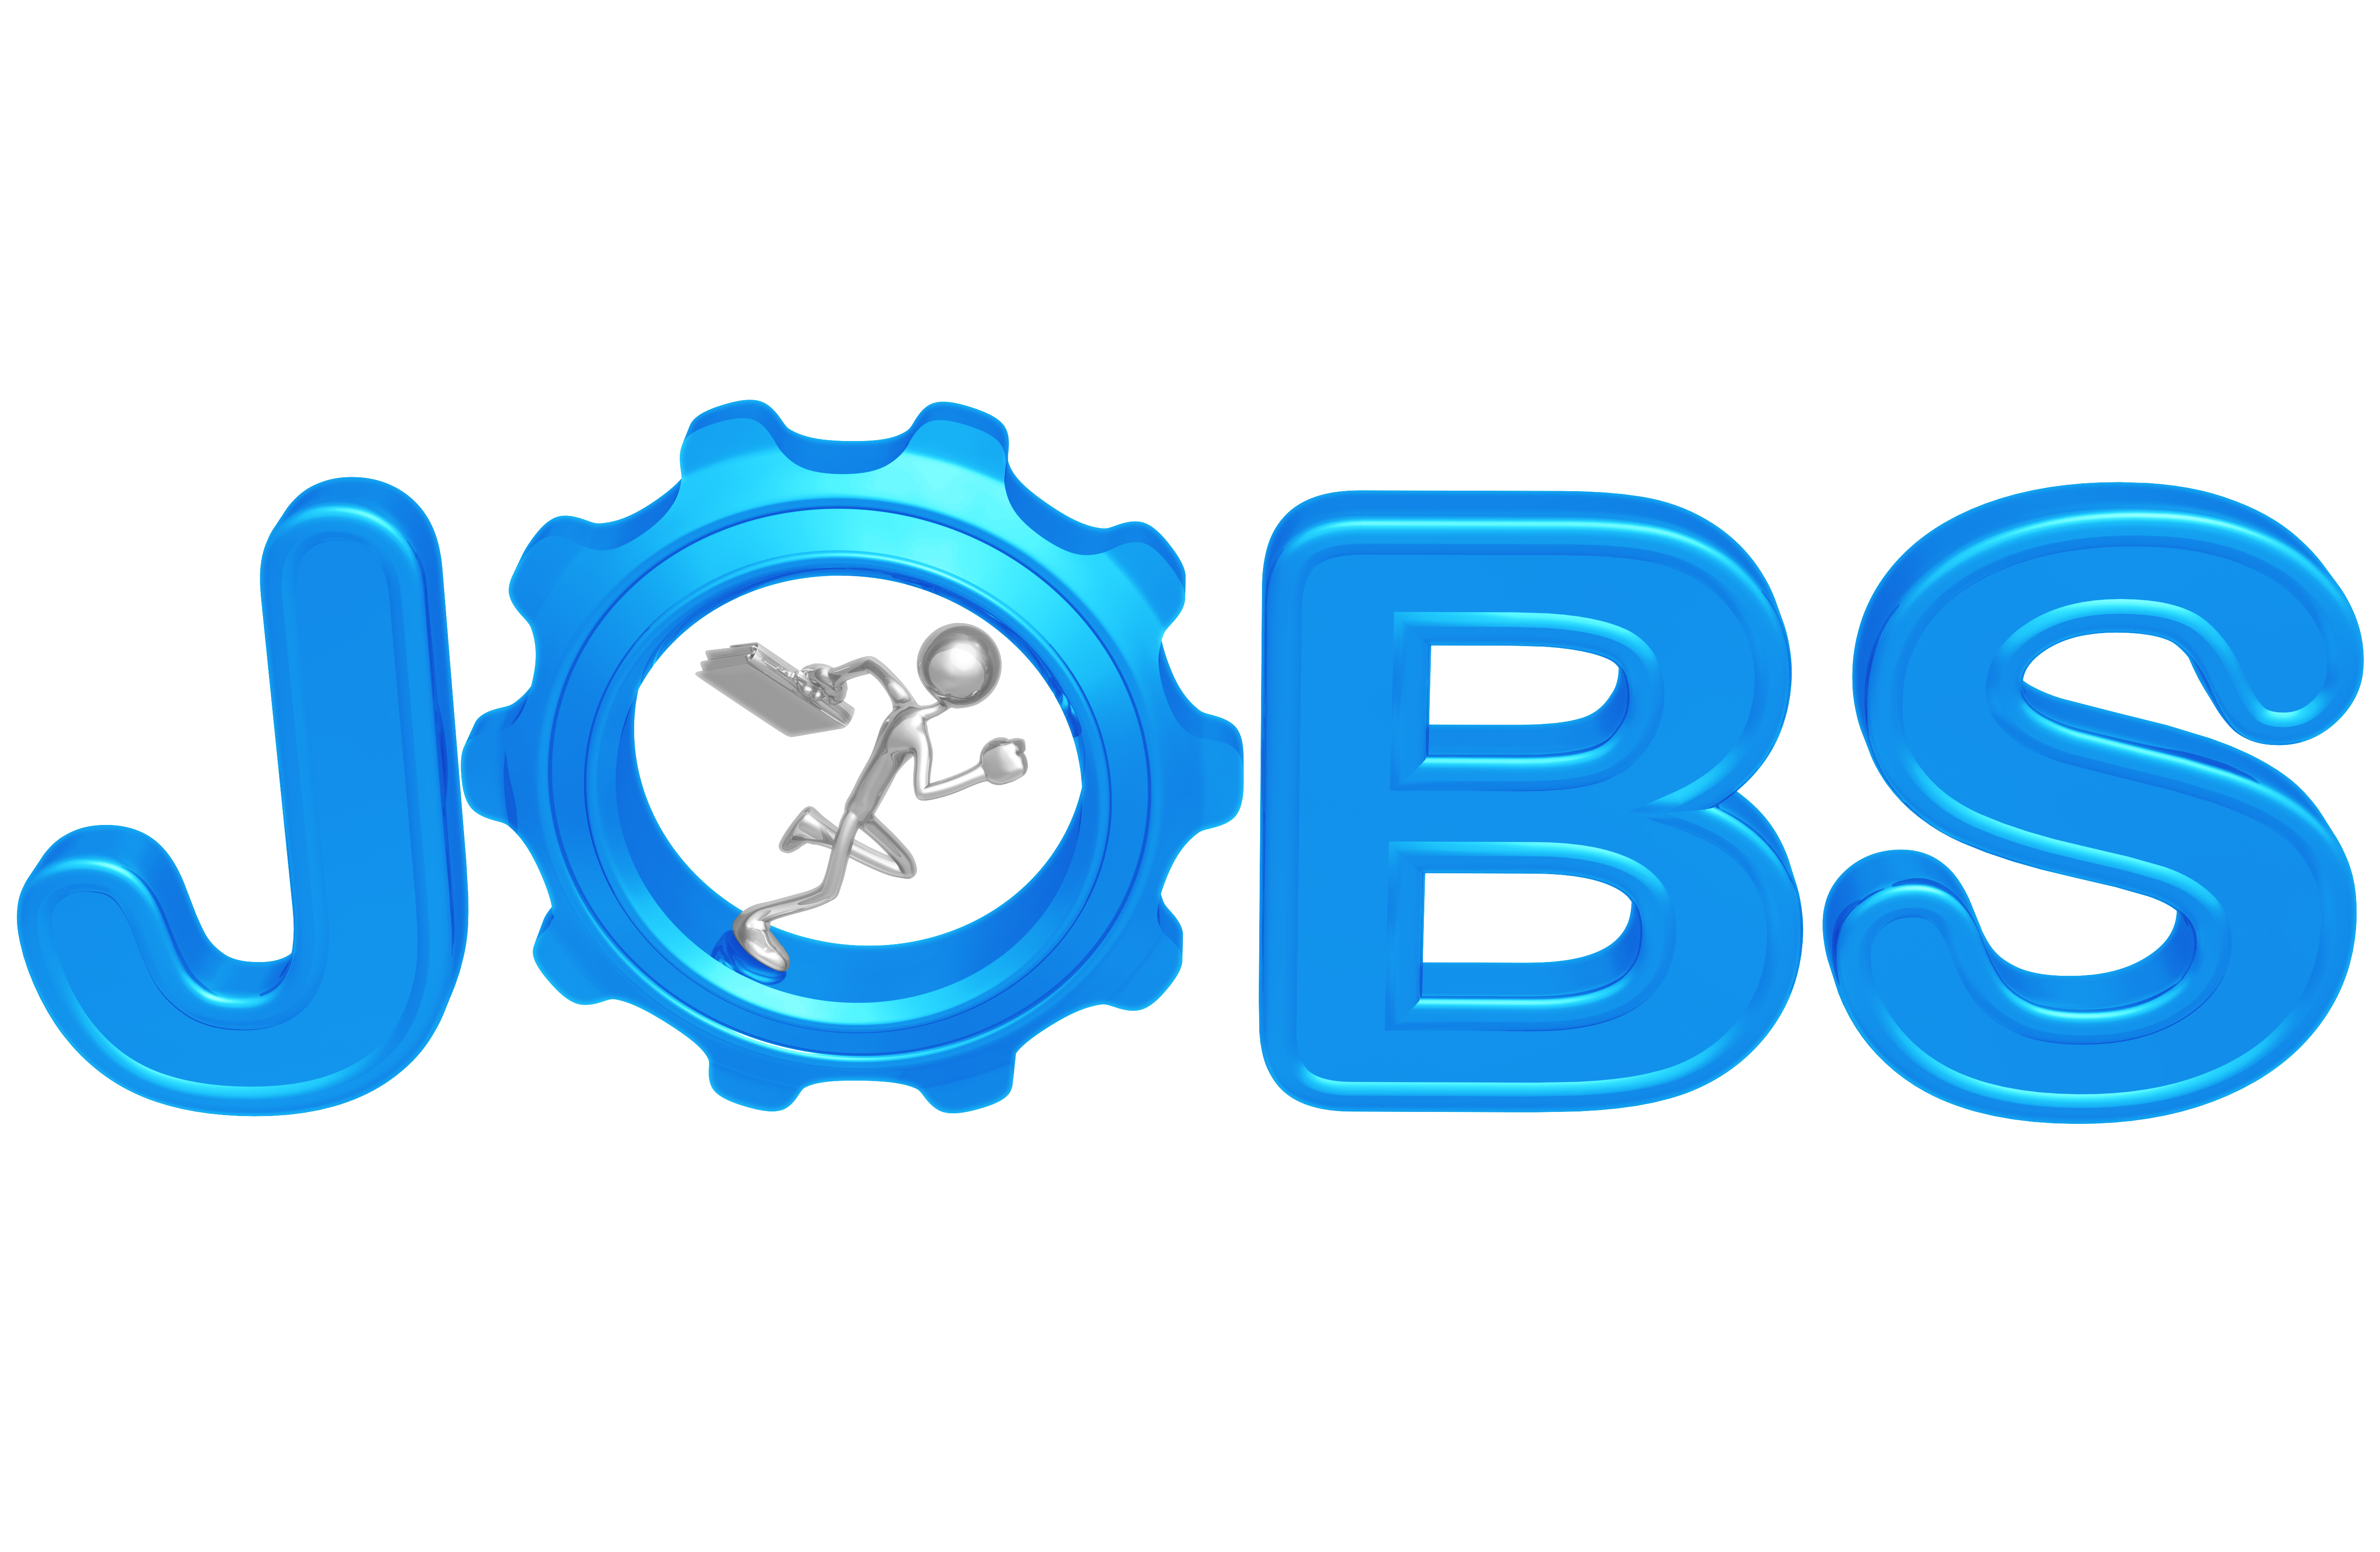 Bobcaygeon Kawartha Lakes JObs represented by Jobs in blue with o as a gear with a silver stickman running in the gear